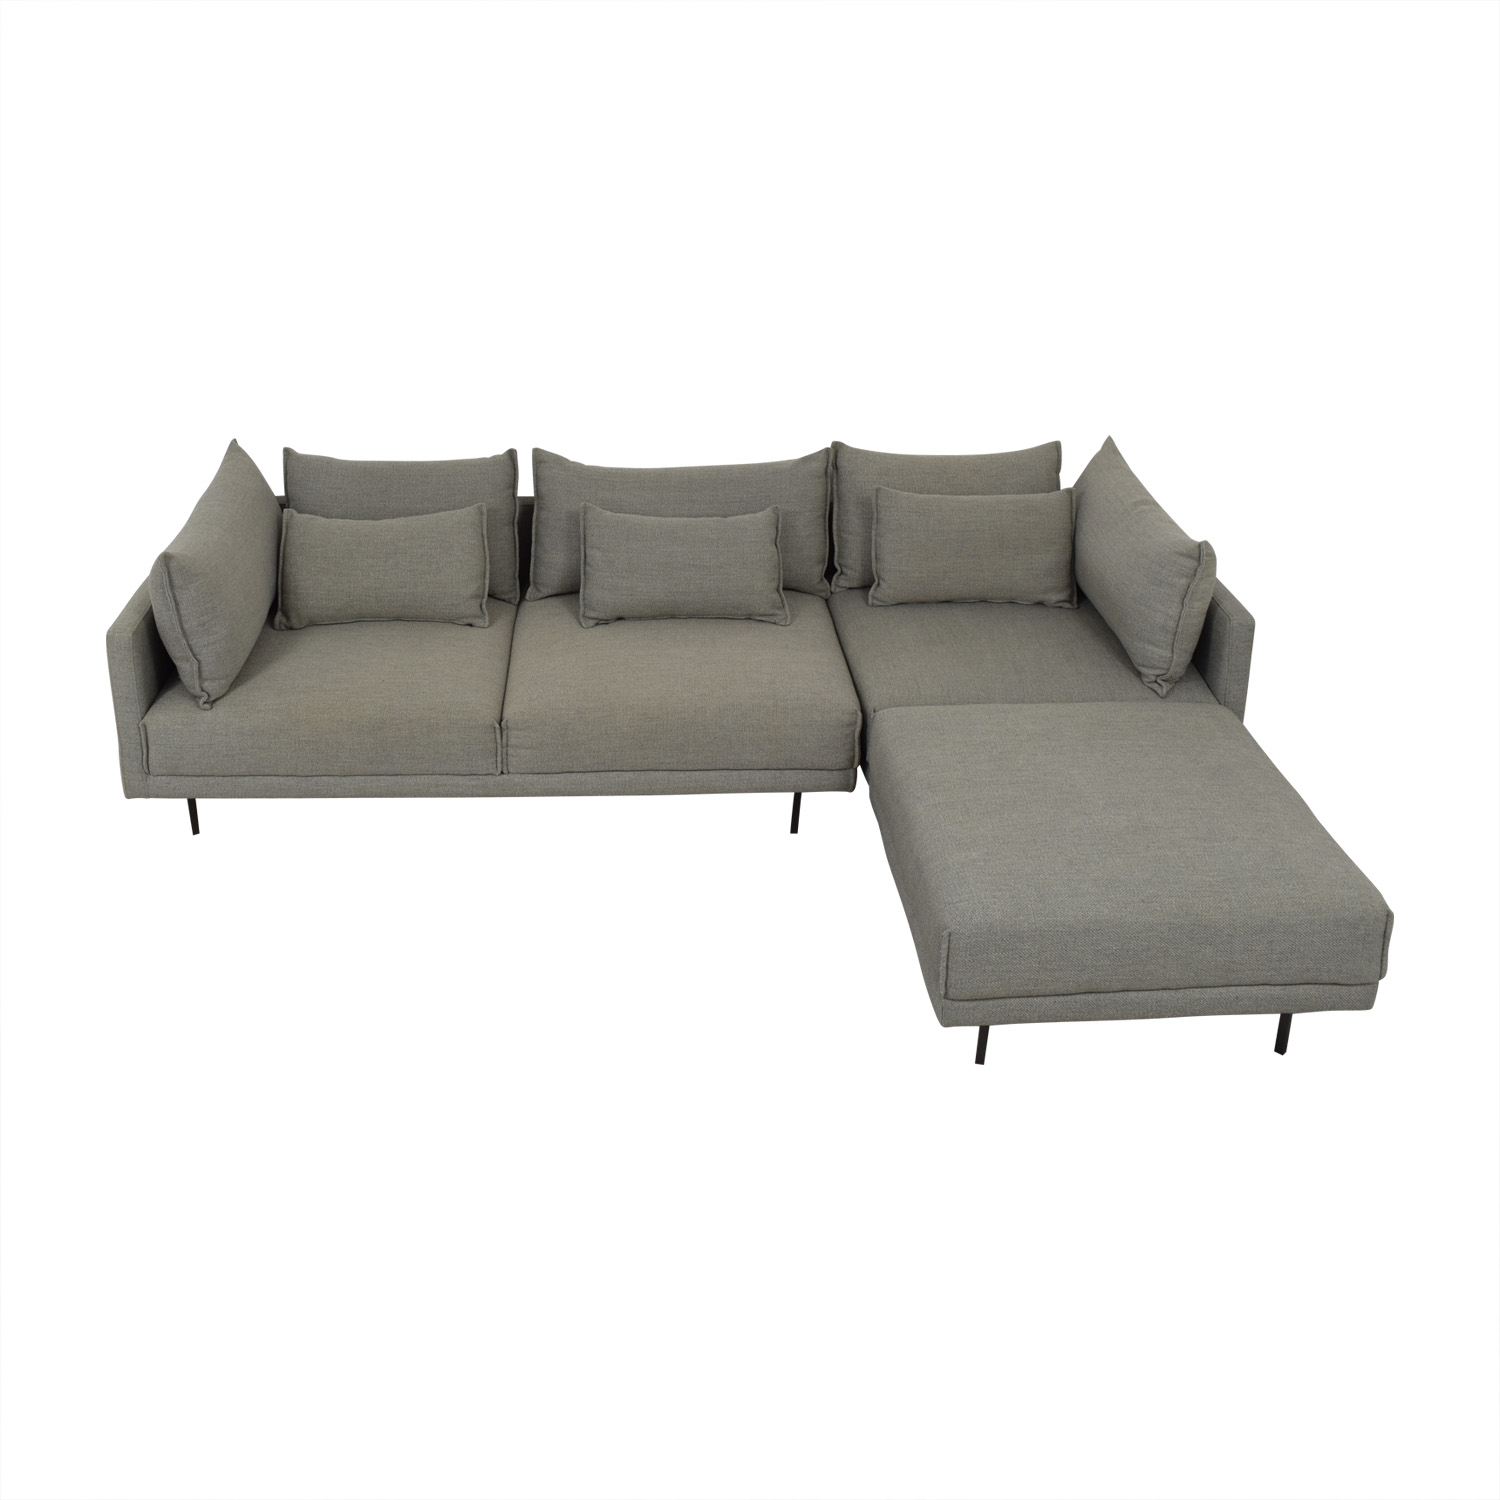 West Elm West Elm Halsey Sectional dimensions